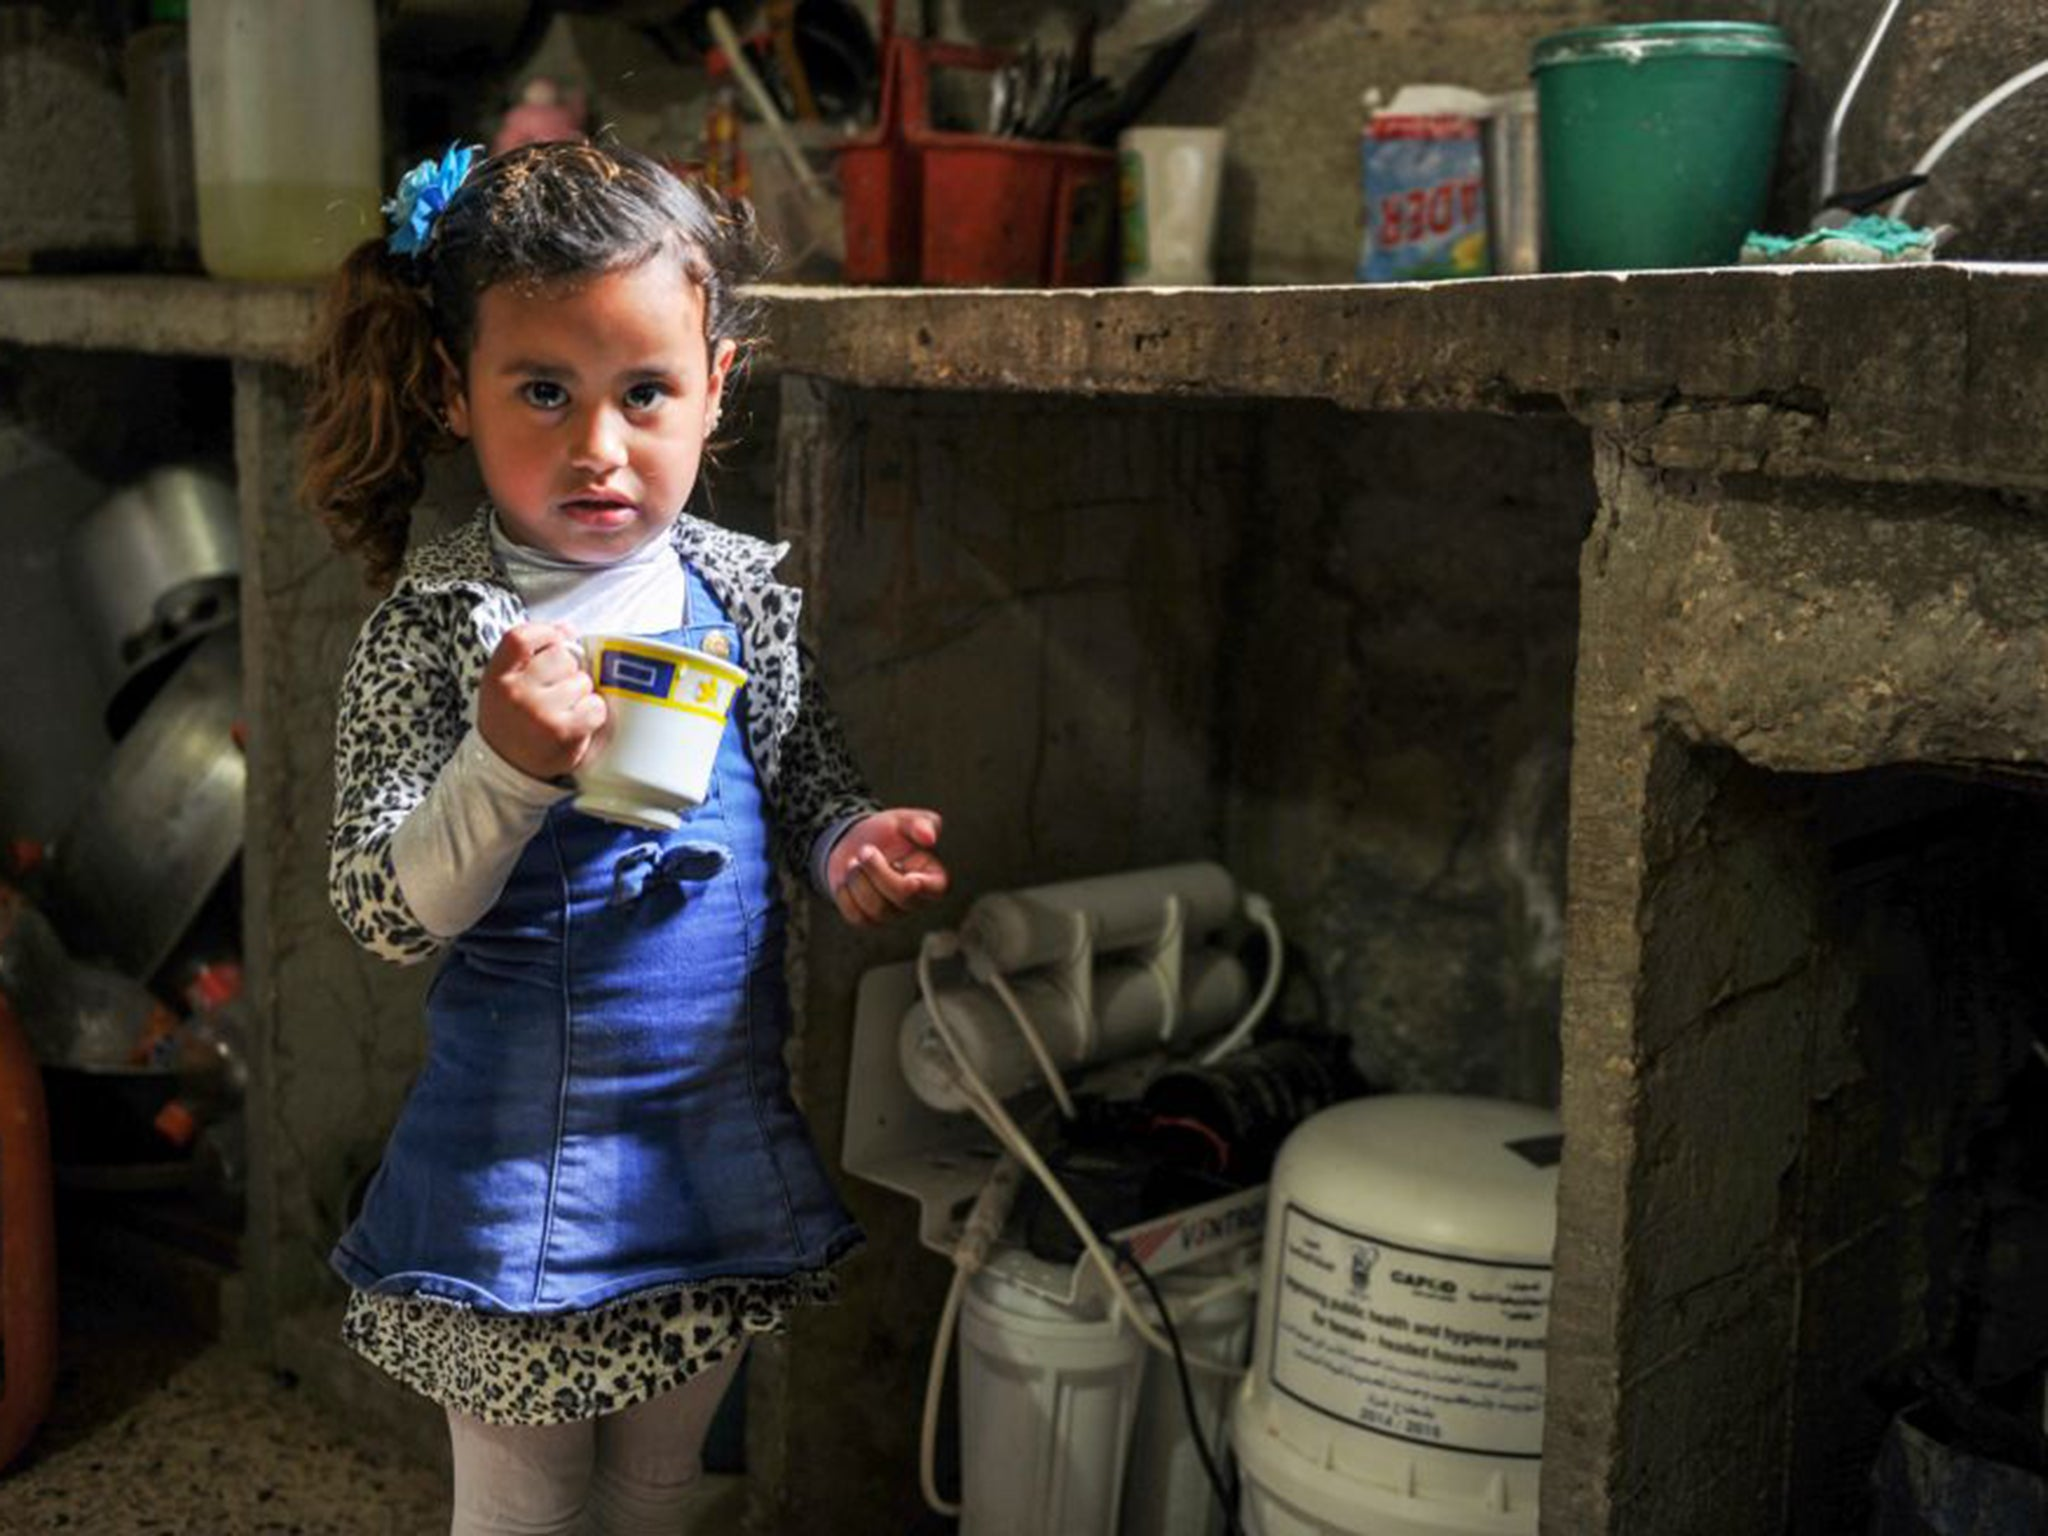 Gaza a year on: The shelling may have stopped, but there's little relief for those left behind